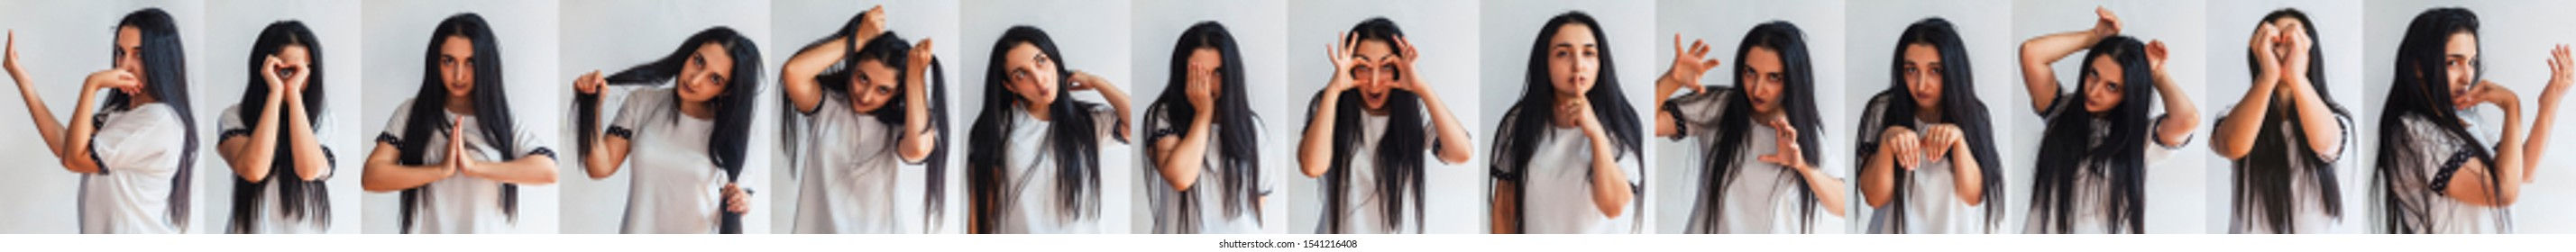 Halloween collage of cute woman in a white t-shirt with different funny facial expressions. Collection of beautiful female portraits making different emotions against a white background